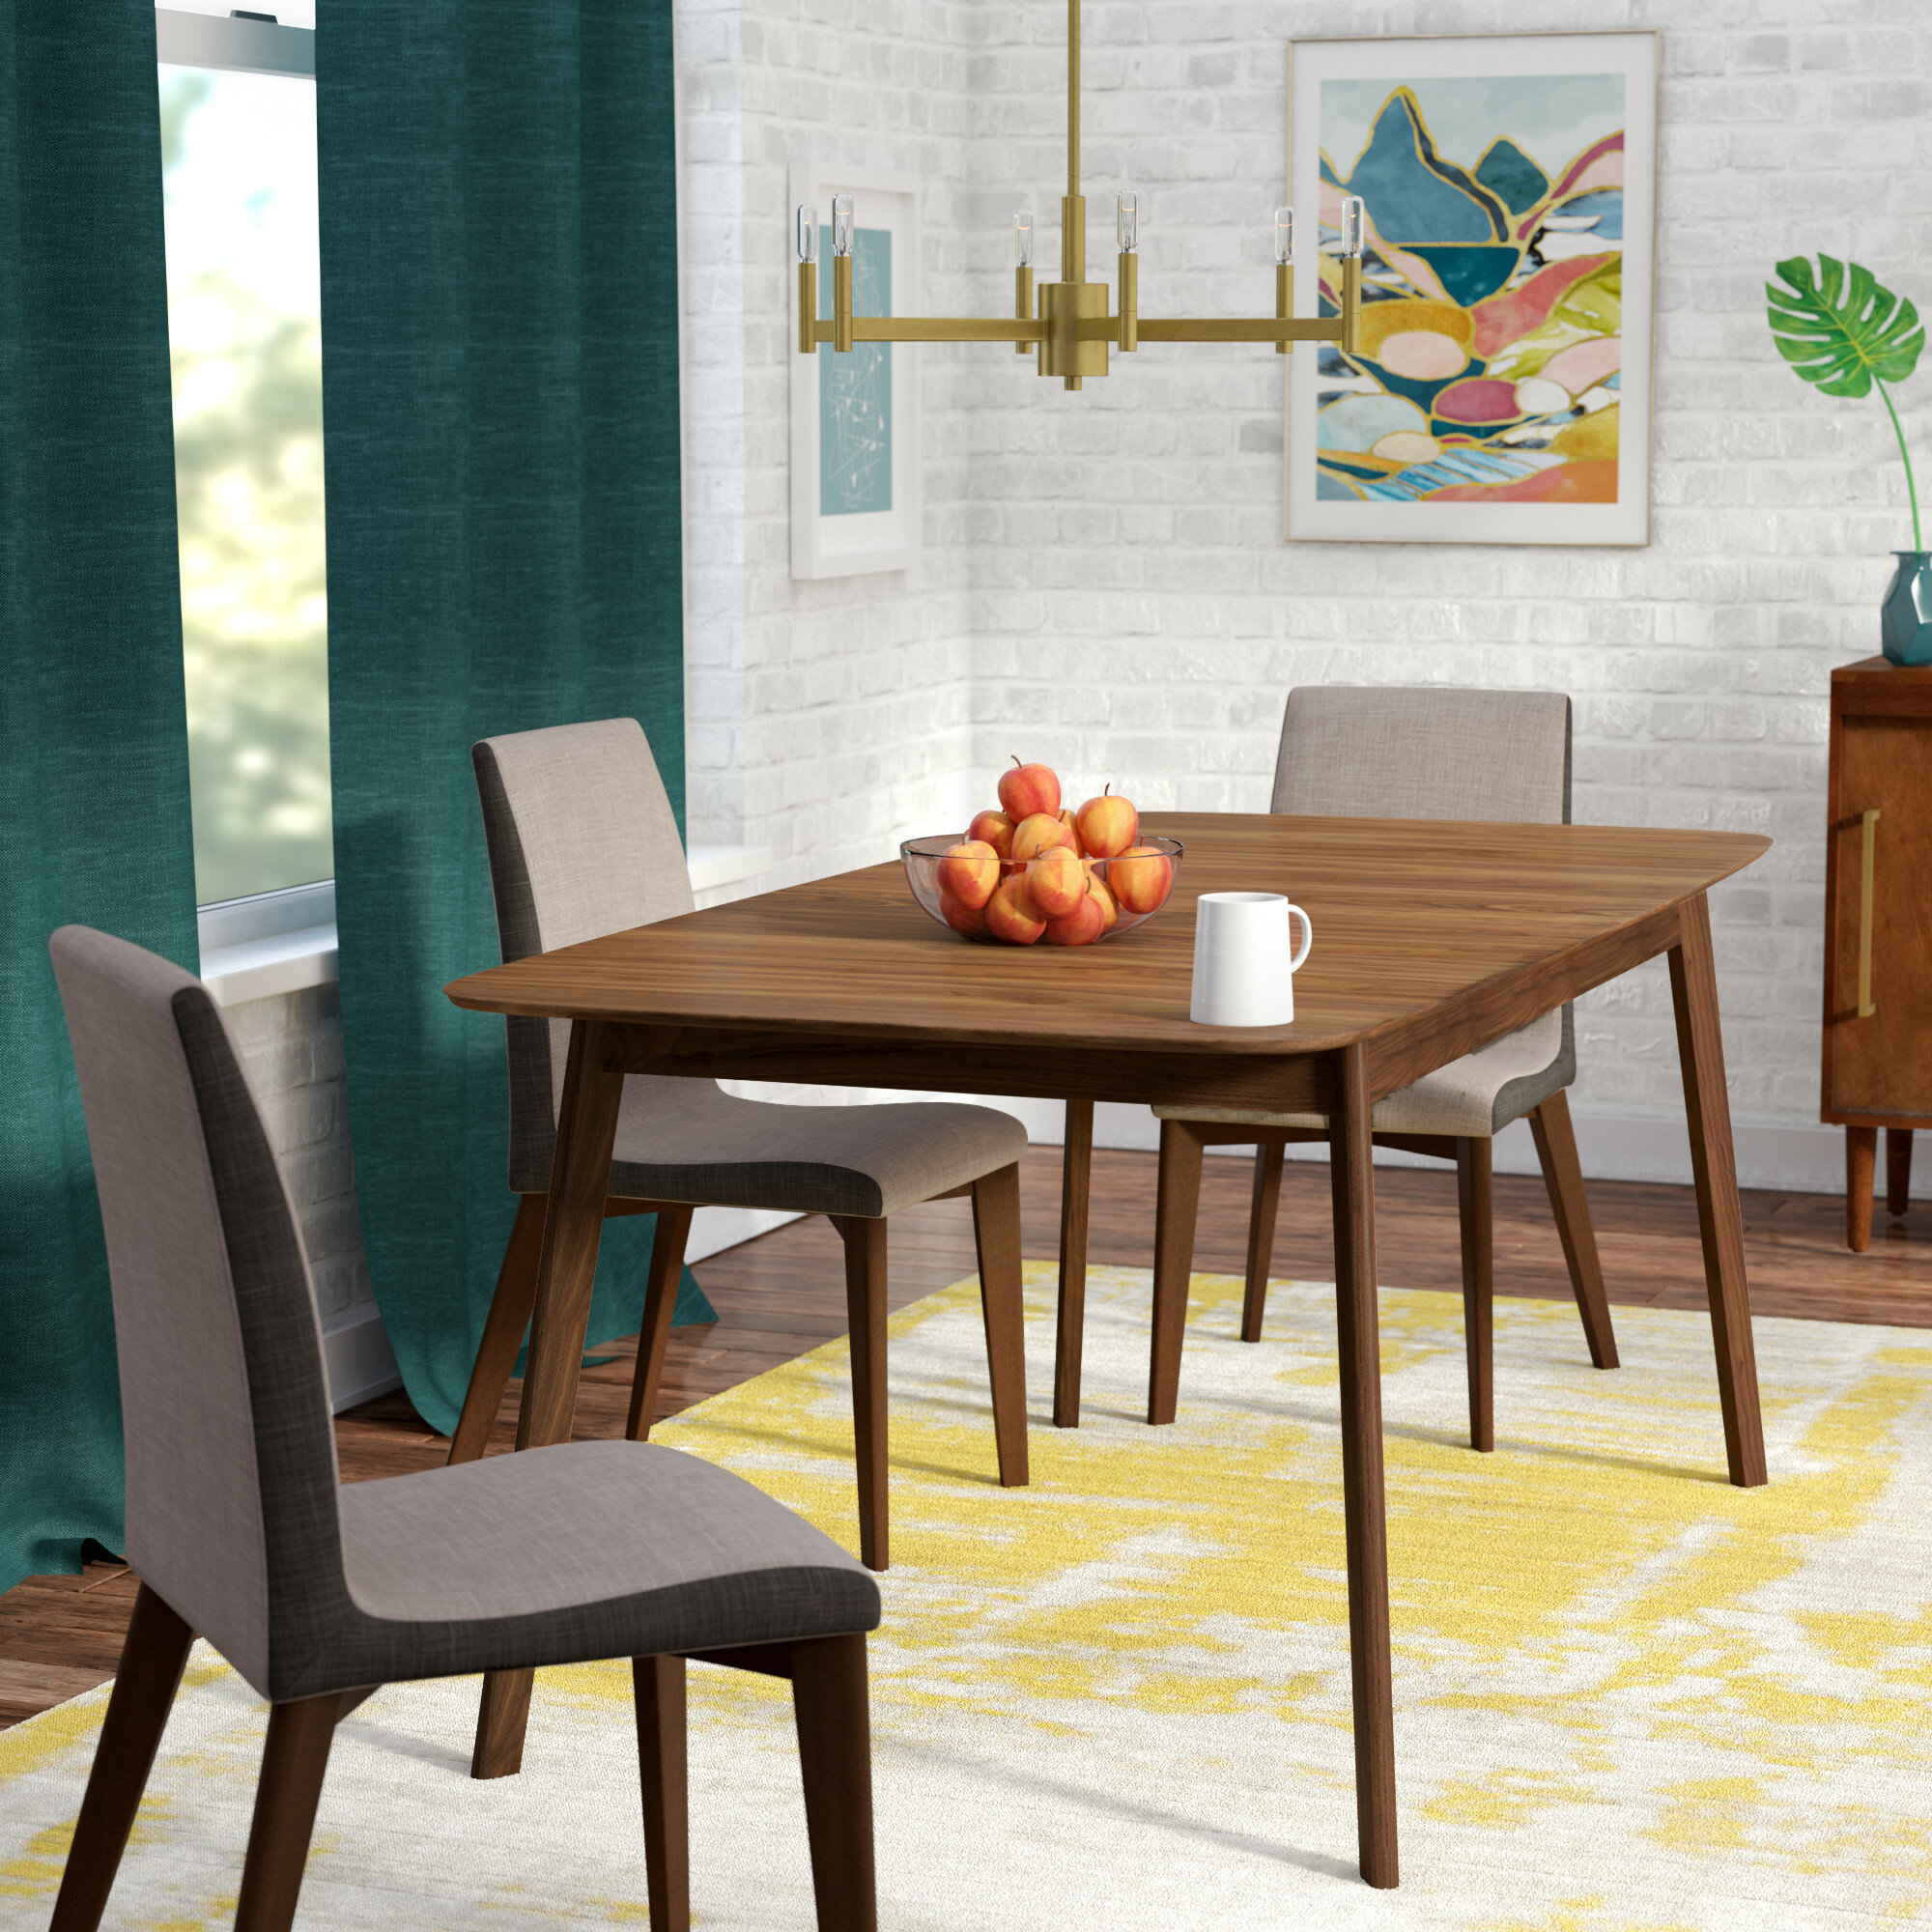 Extendable Mid Century Modern Kitchen Dining Tables You Ll Love In 2020 Wayfair